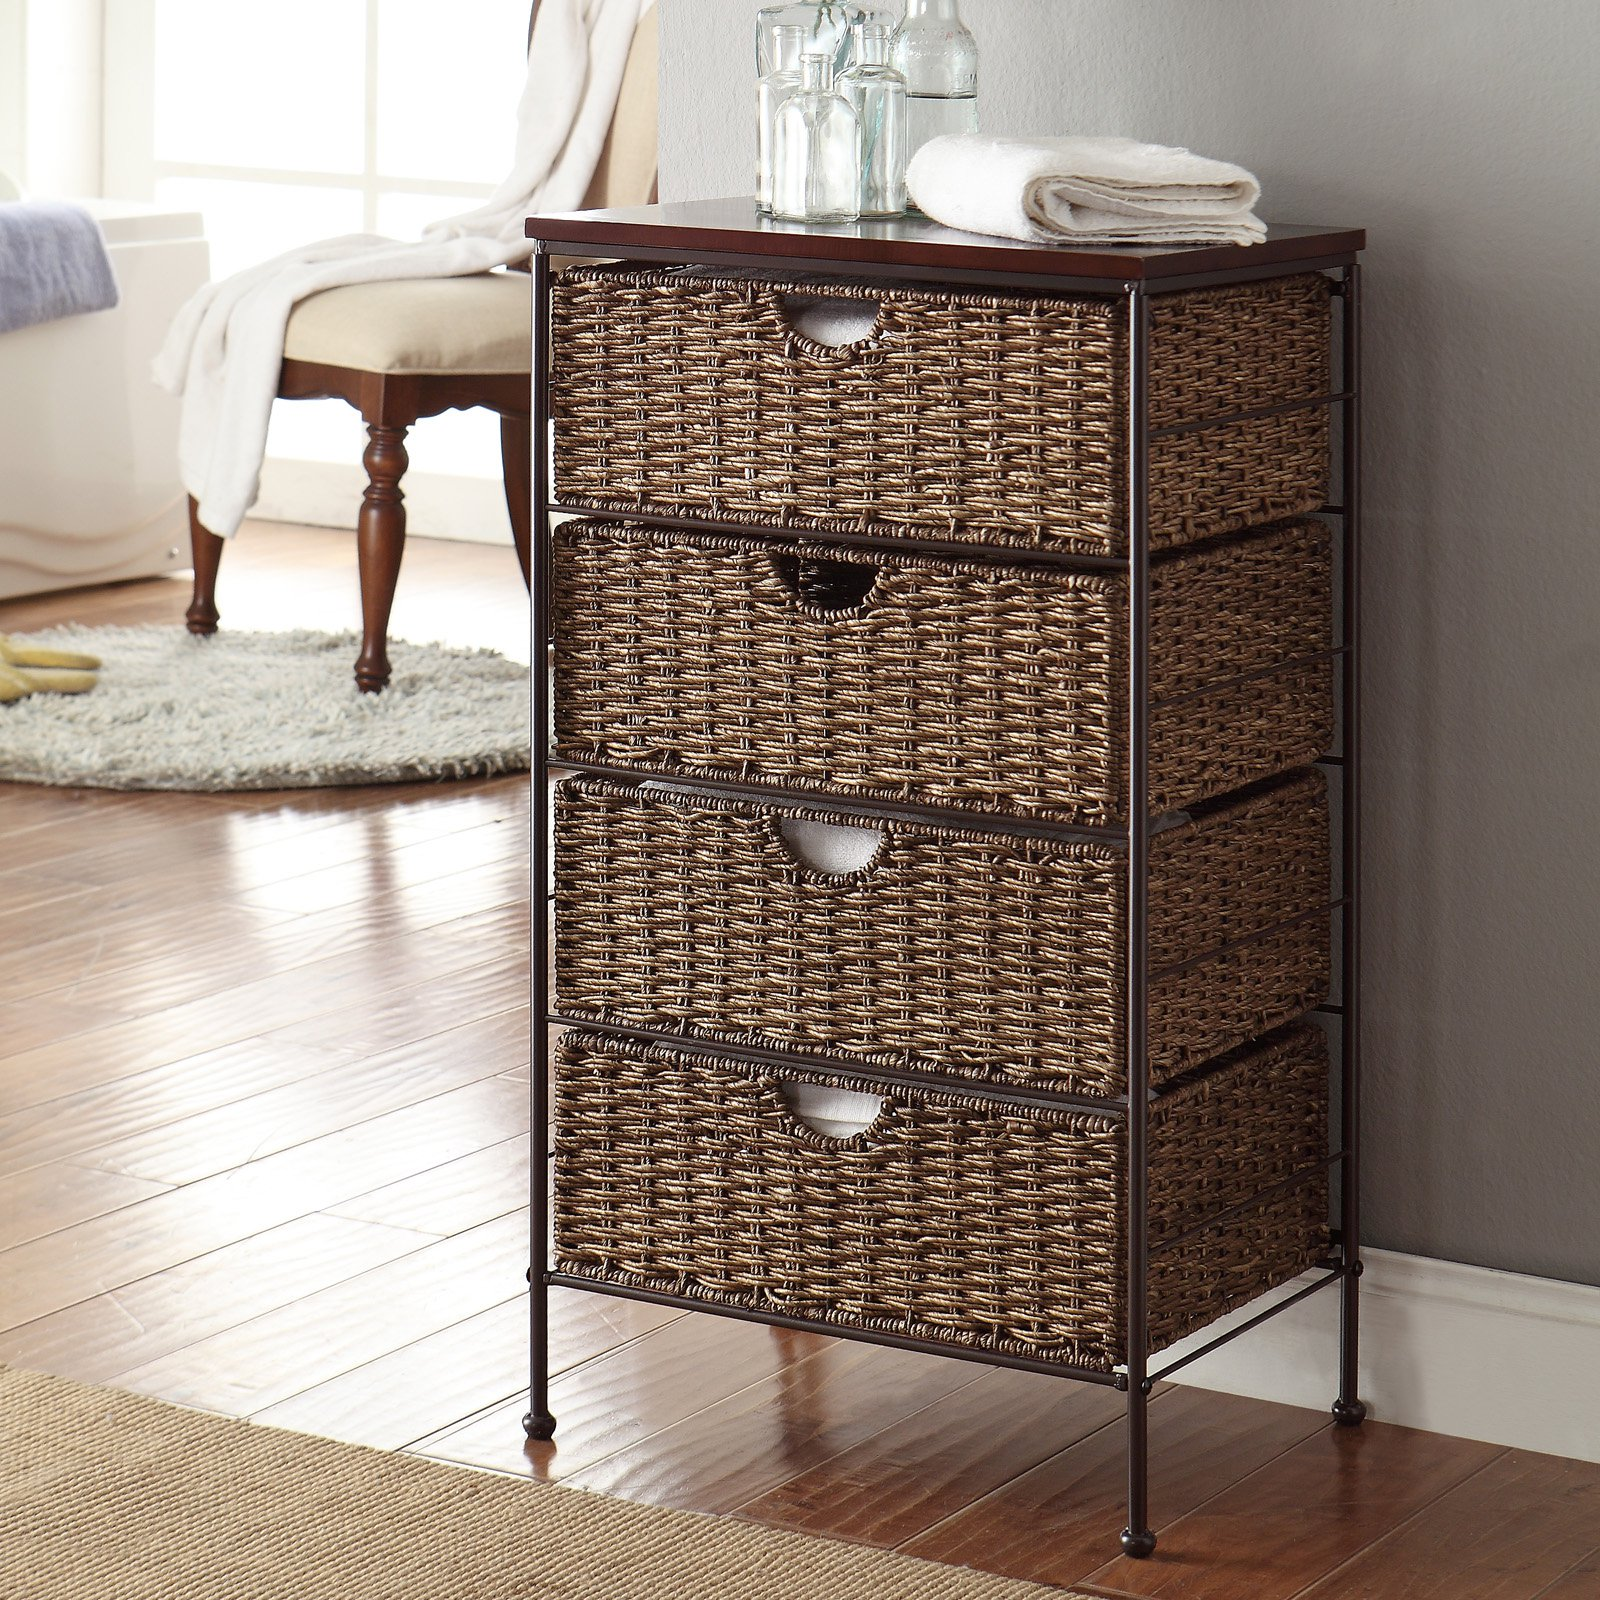 4D Concepts Farmington Wood-Top Maize Weave 4 Drawer Chest by 4D Concepts